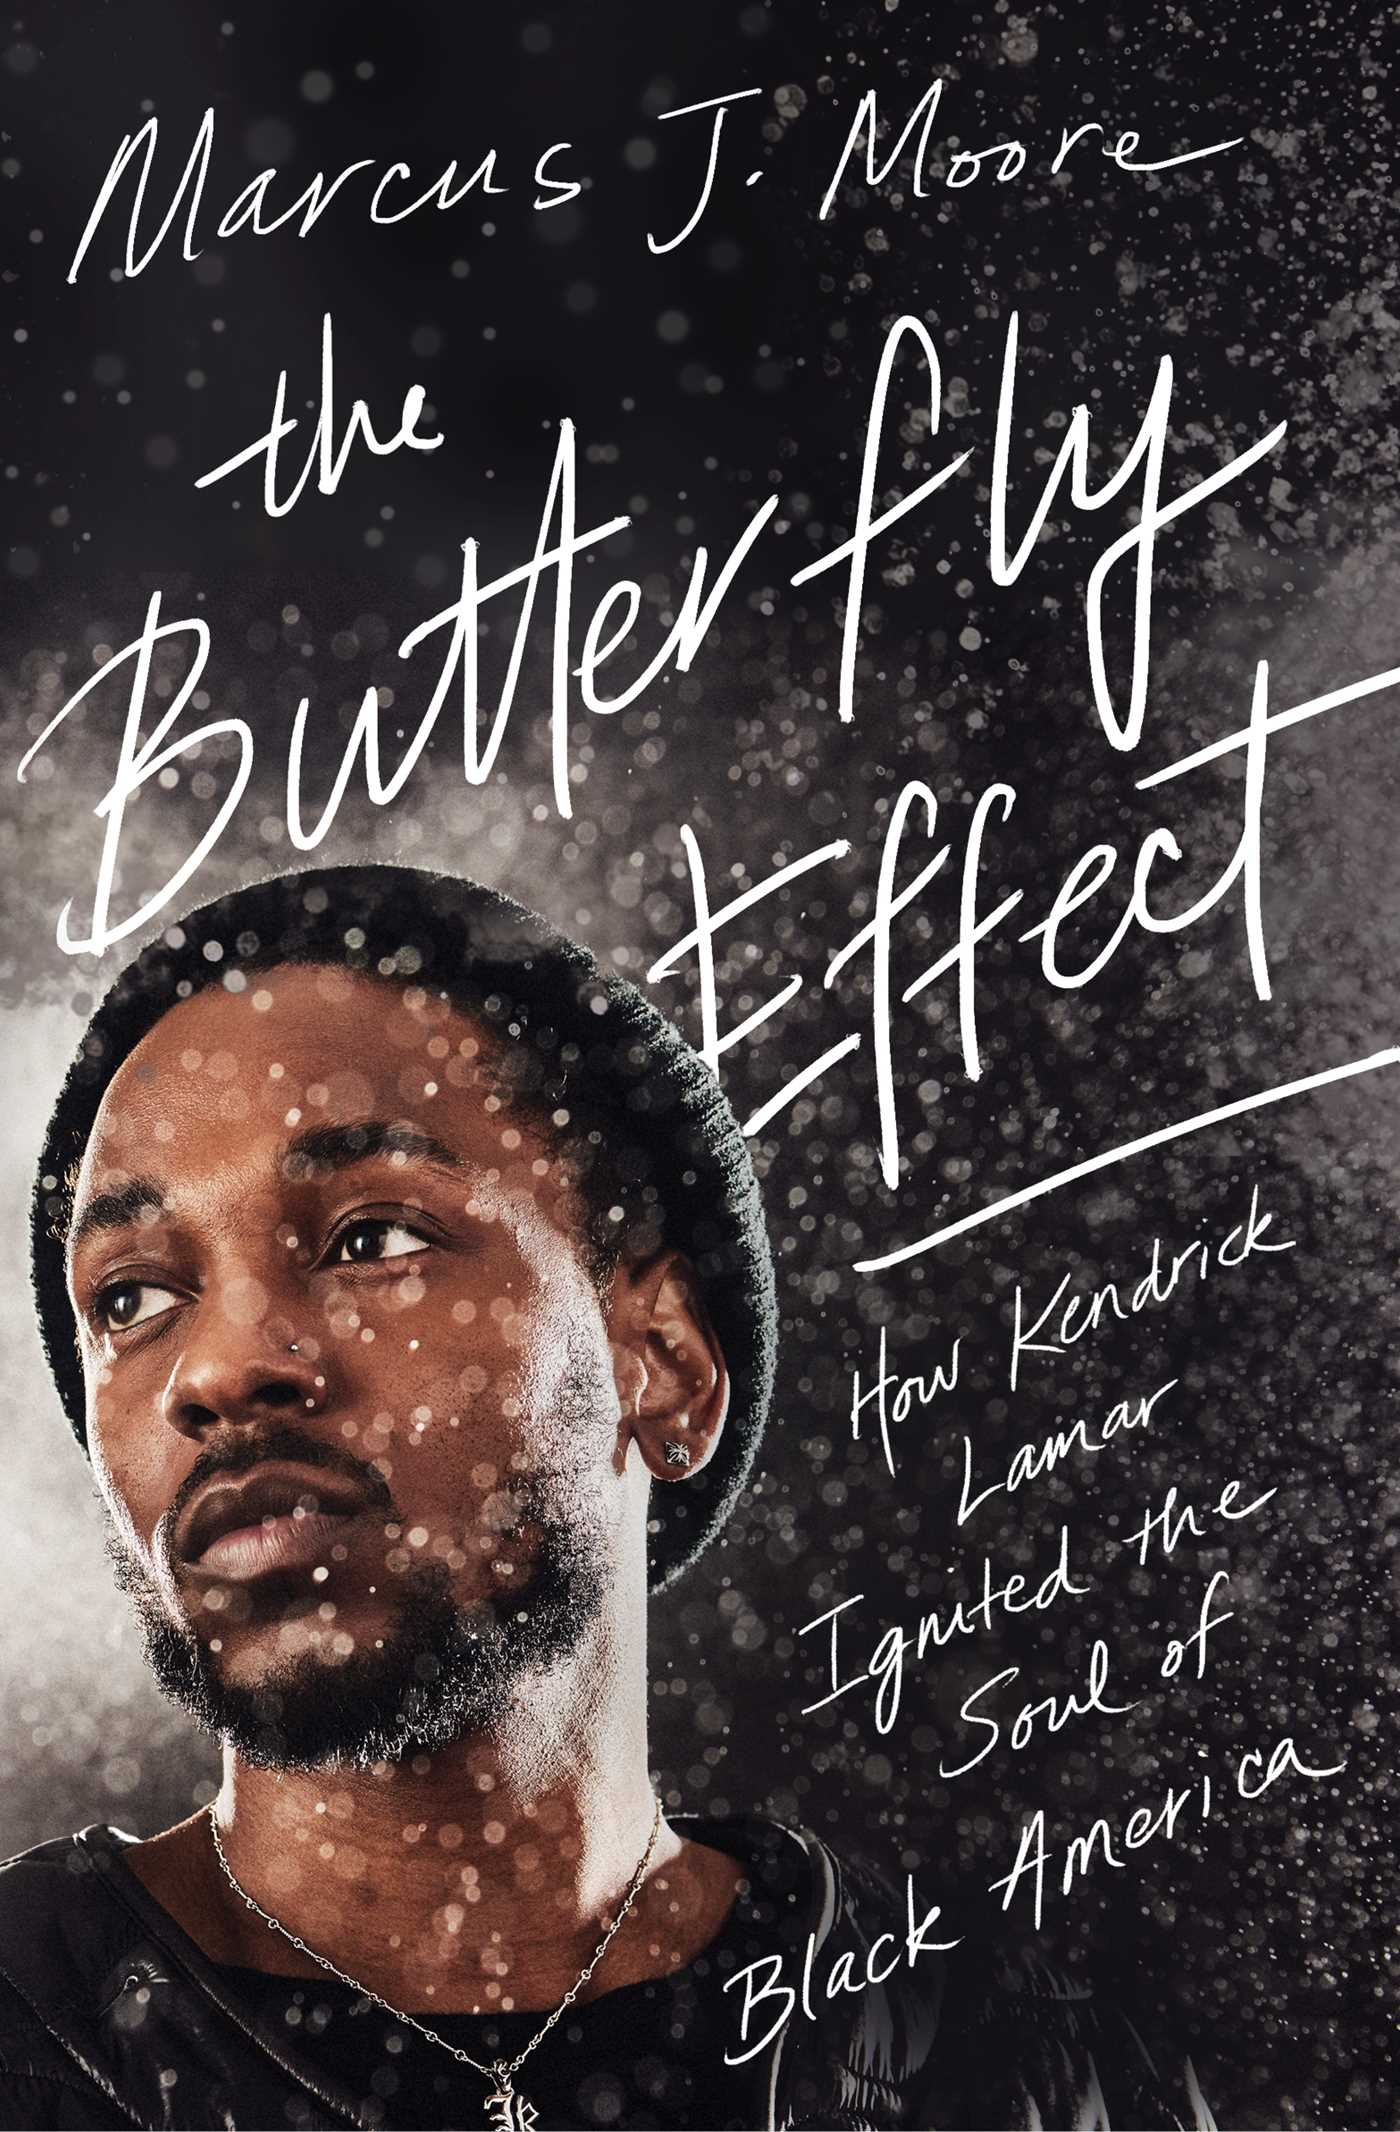 The Butterfly Effect How Kendrick Lamar Ignited the Soul of Black America